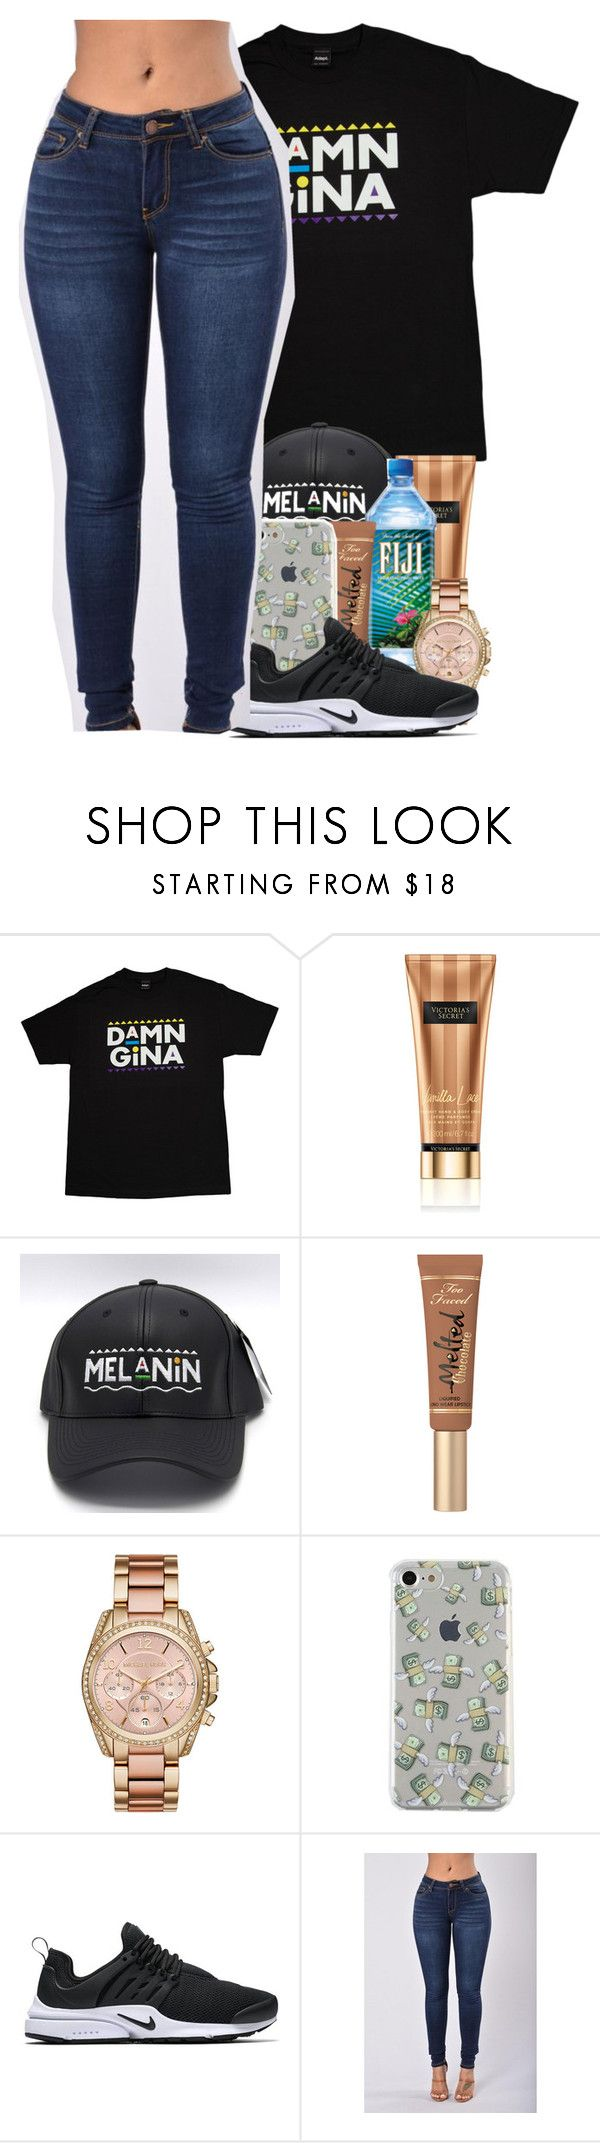 """""""thinkin' 90s <3"""" by melanin-avii ❤ liked on Polyvore featuring Victoria's Secret, Michael Kors and NIKE"""